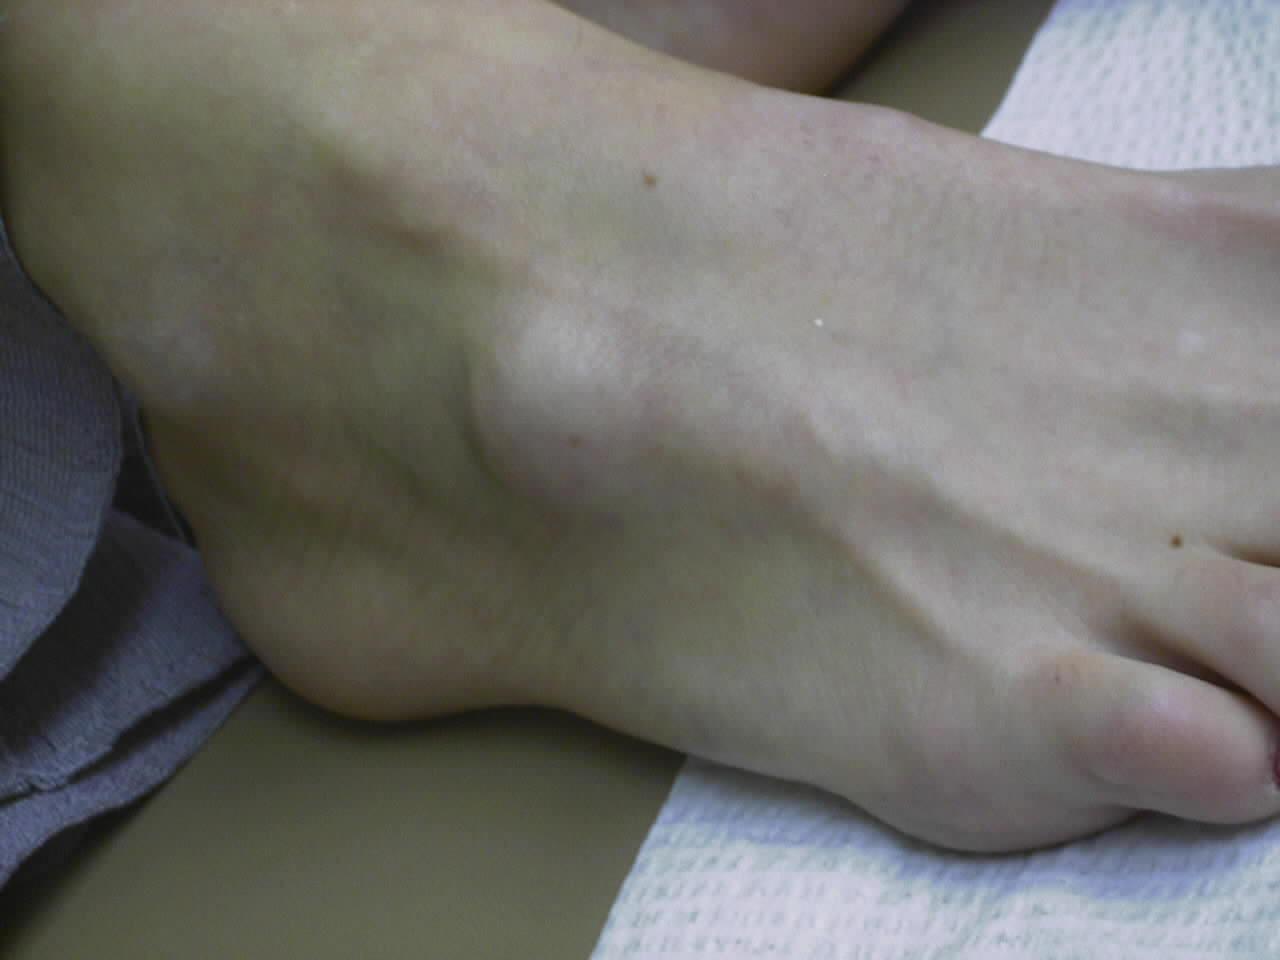 soft foot bump